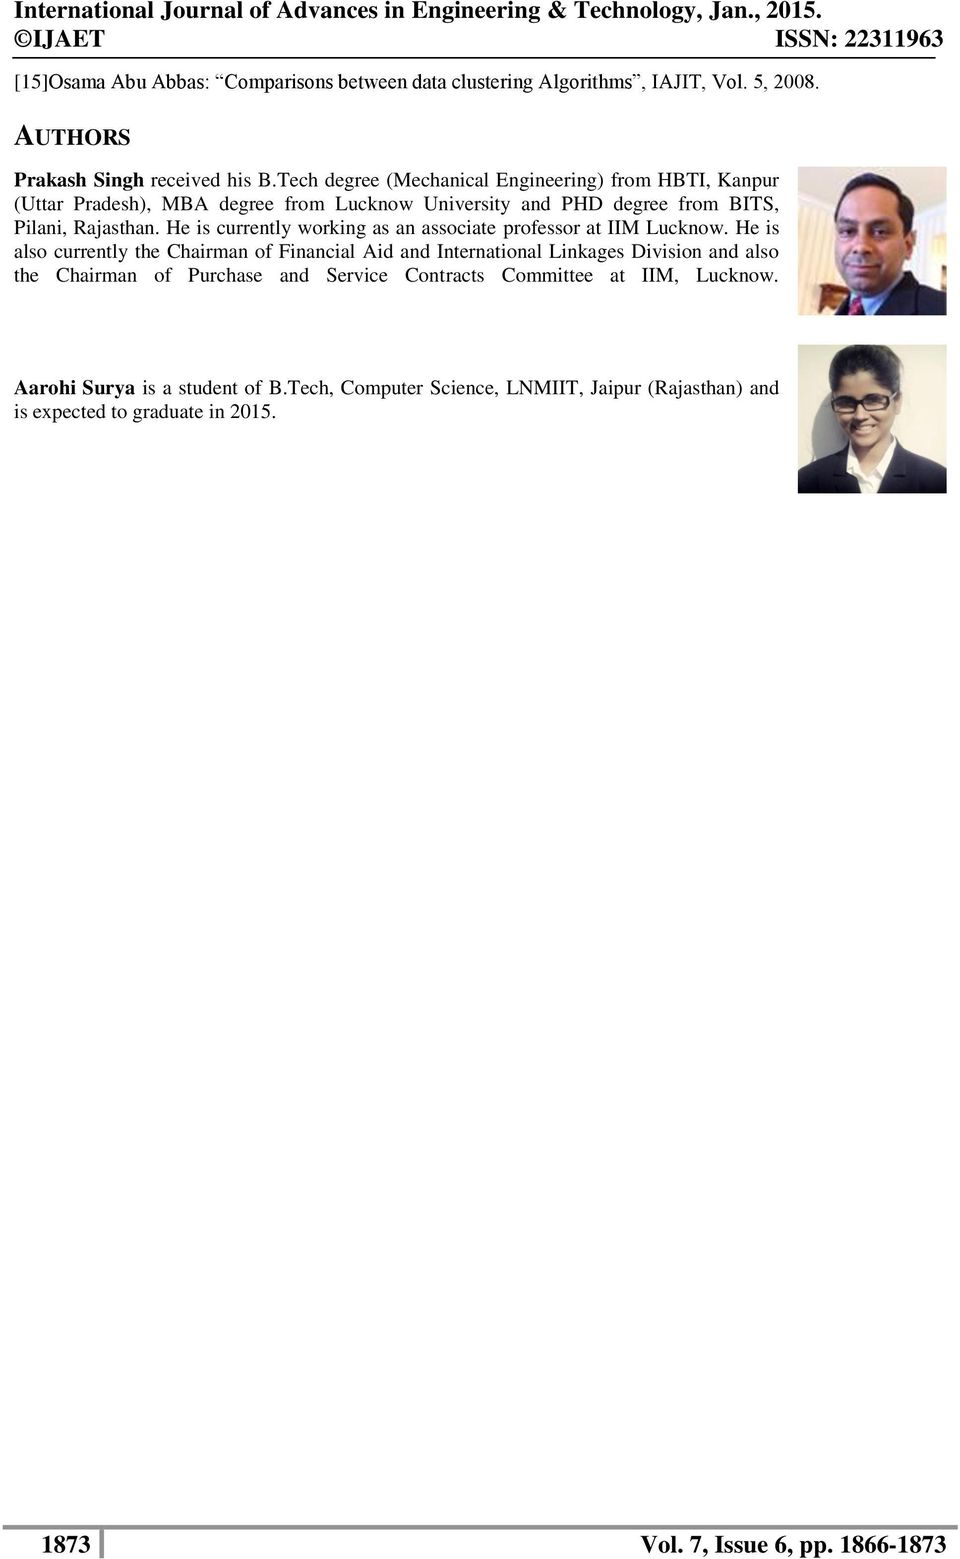 He is currently working as an associate professor at IIM Lucknow.